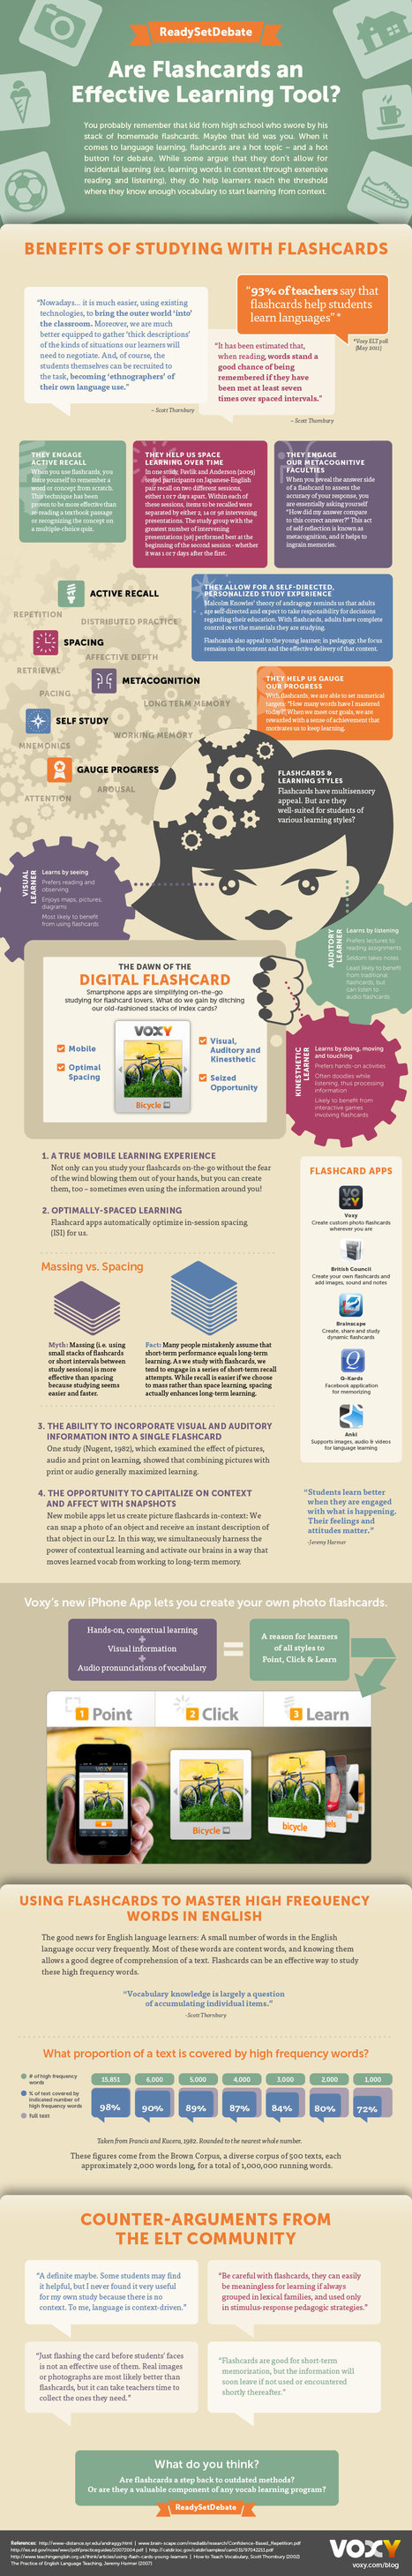 Are Flashcards an Effective Learning Tool? | Infographics for Teaching and Learning | Scoop.it